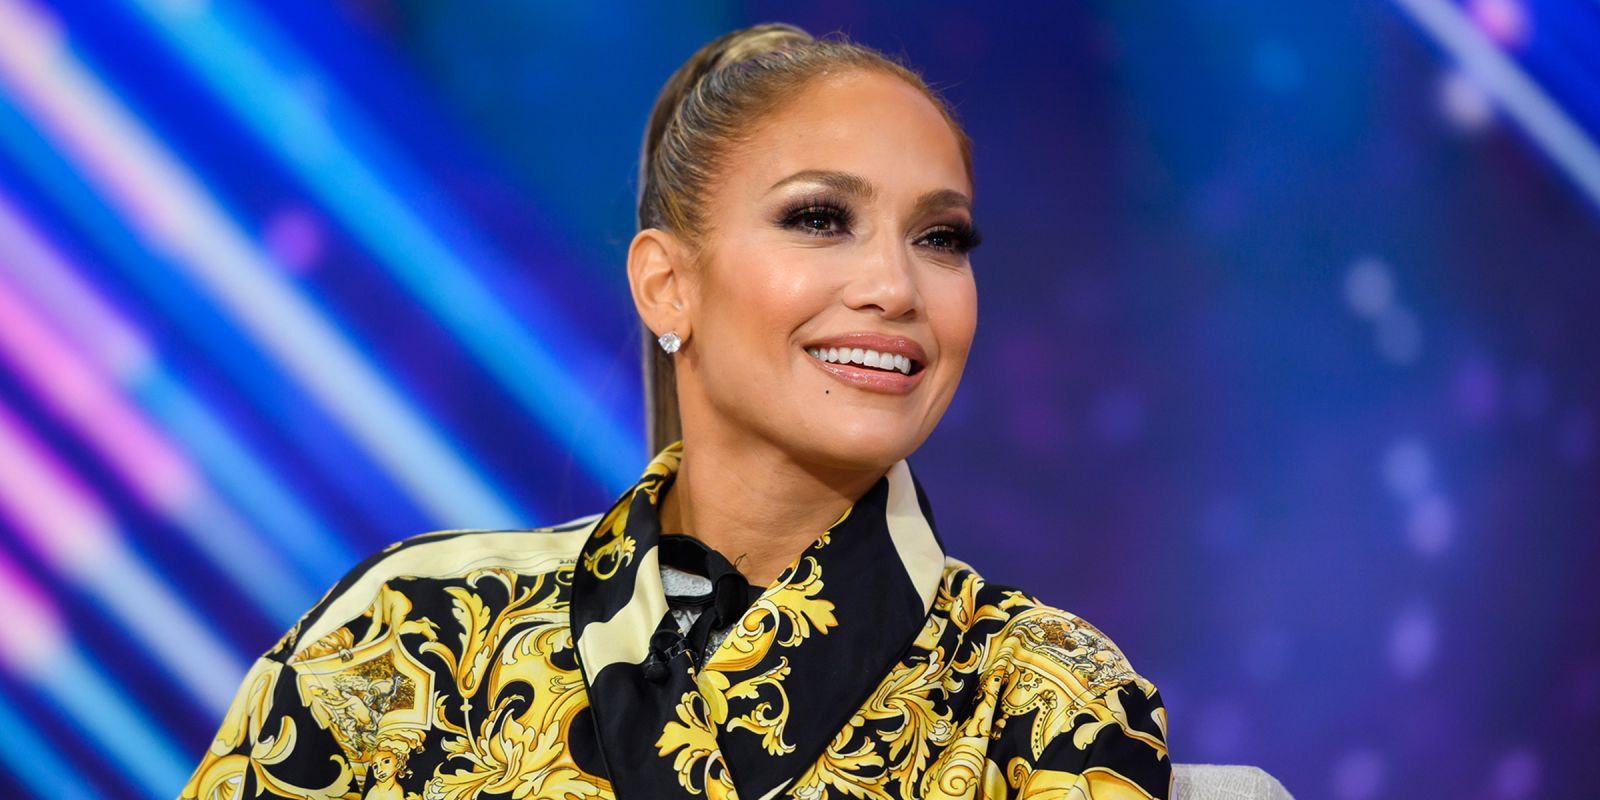 jennifer-lopez-relationship-with-a-rod-today-main-190506-002_e3896eefbdb2f953dbebb2d80f83fcc9 Өнөөдөр Женнифер Лопес 50 нас хүрч байна